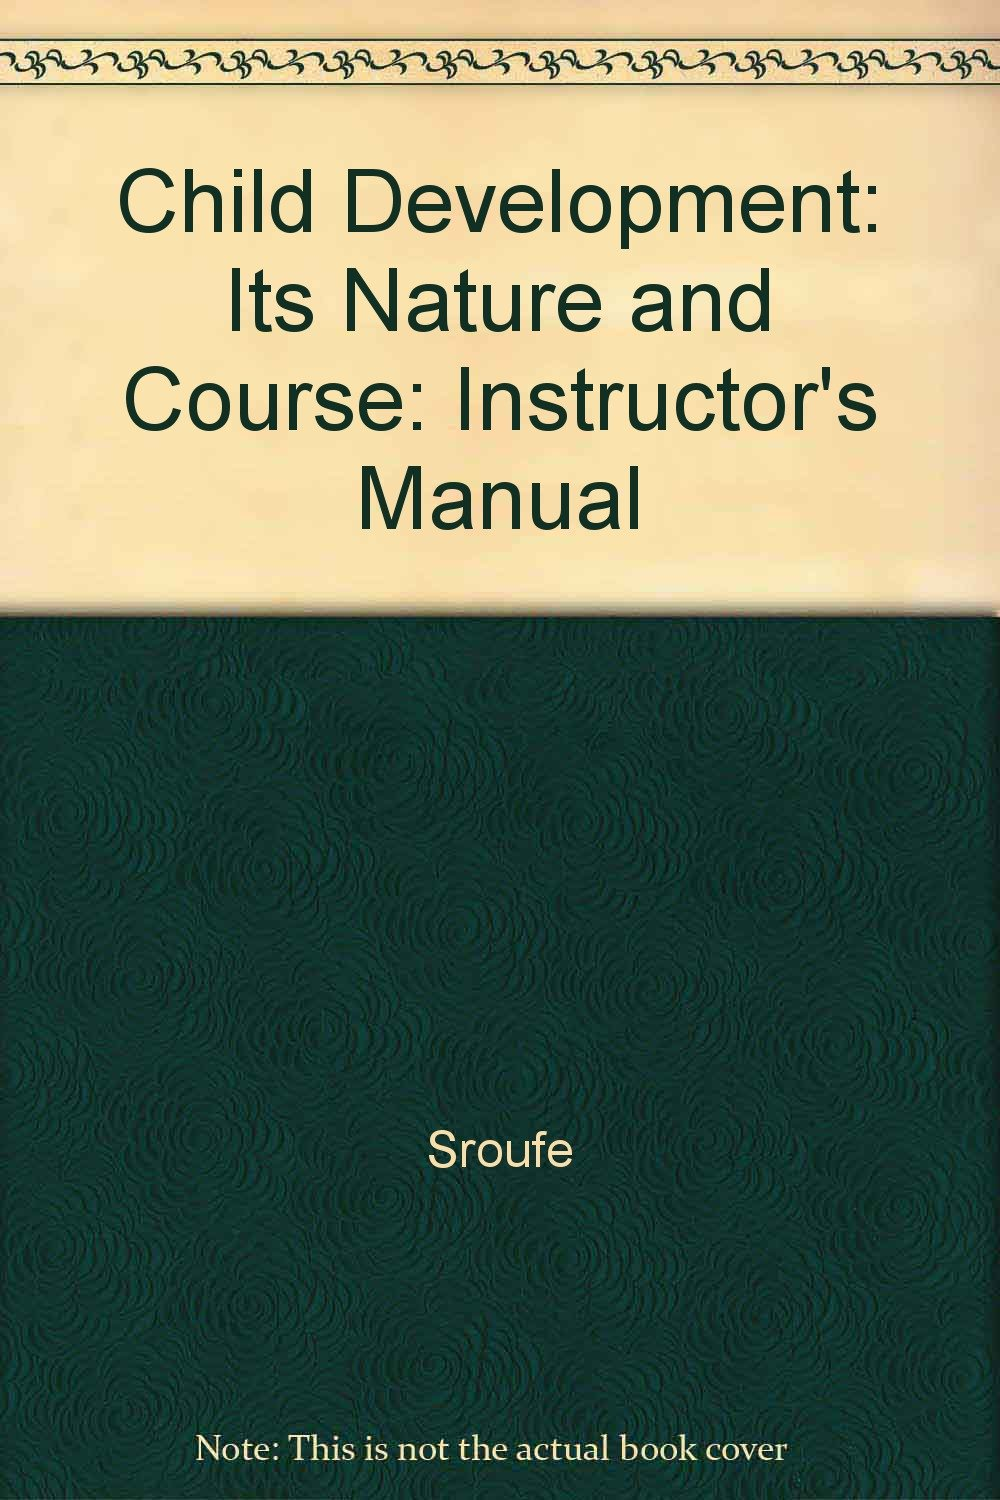 Amazon.fr - Child Development: Its Nature and Course: Instructor's Manual -  Sroufe, Cooper - Livres